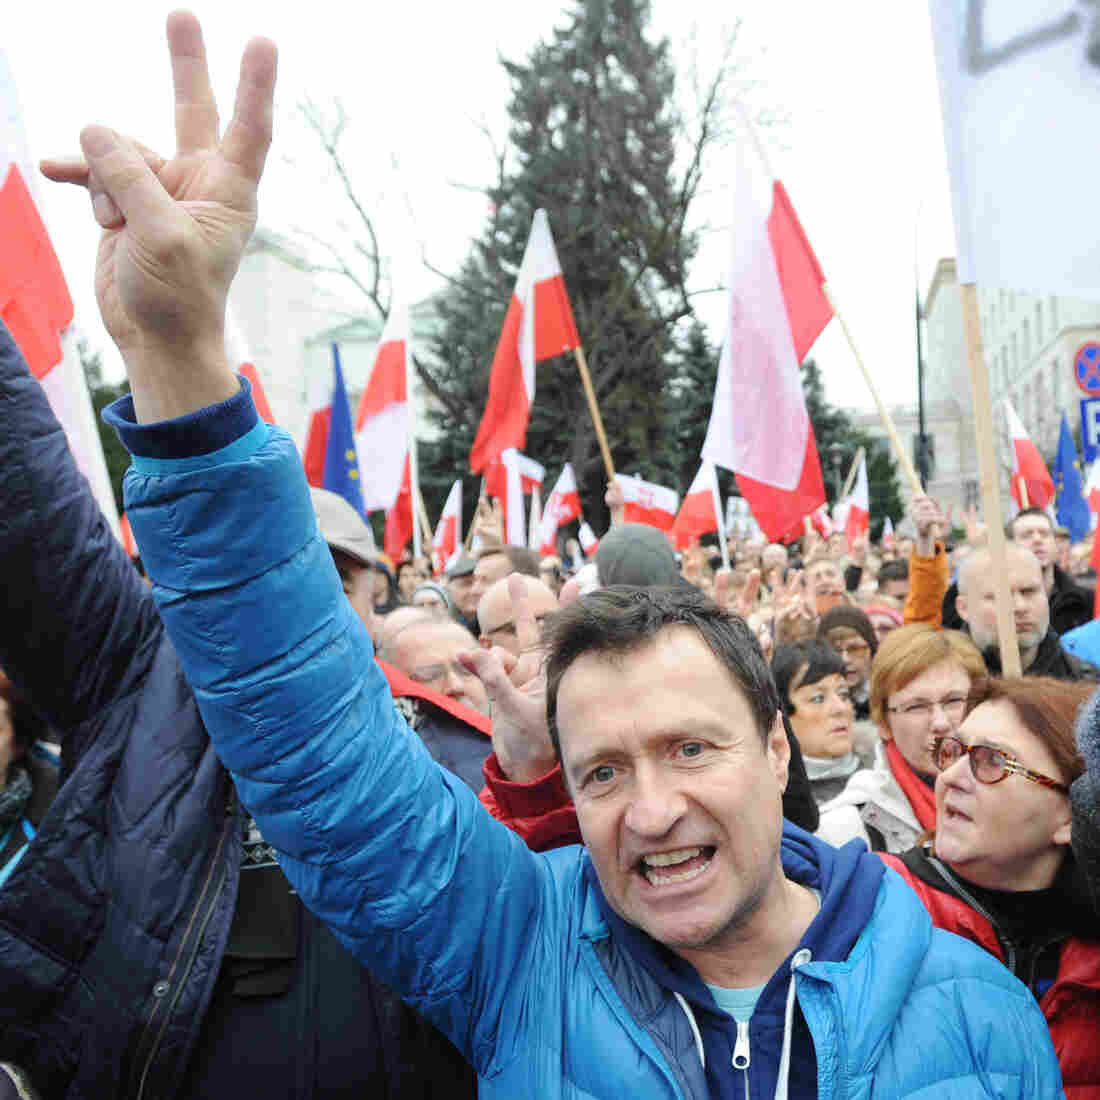 Worries Mount In Poland As Parliament Moves To Upend Checks And Balances